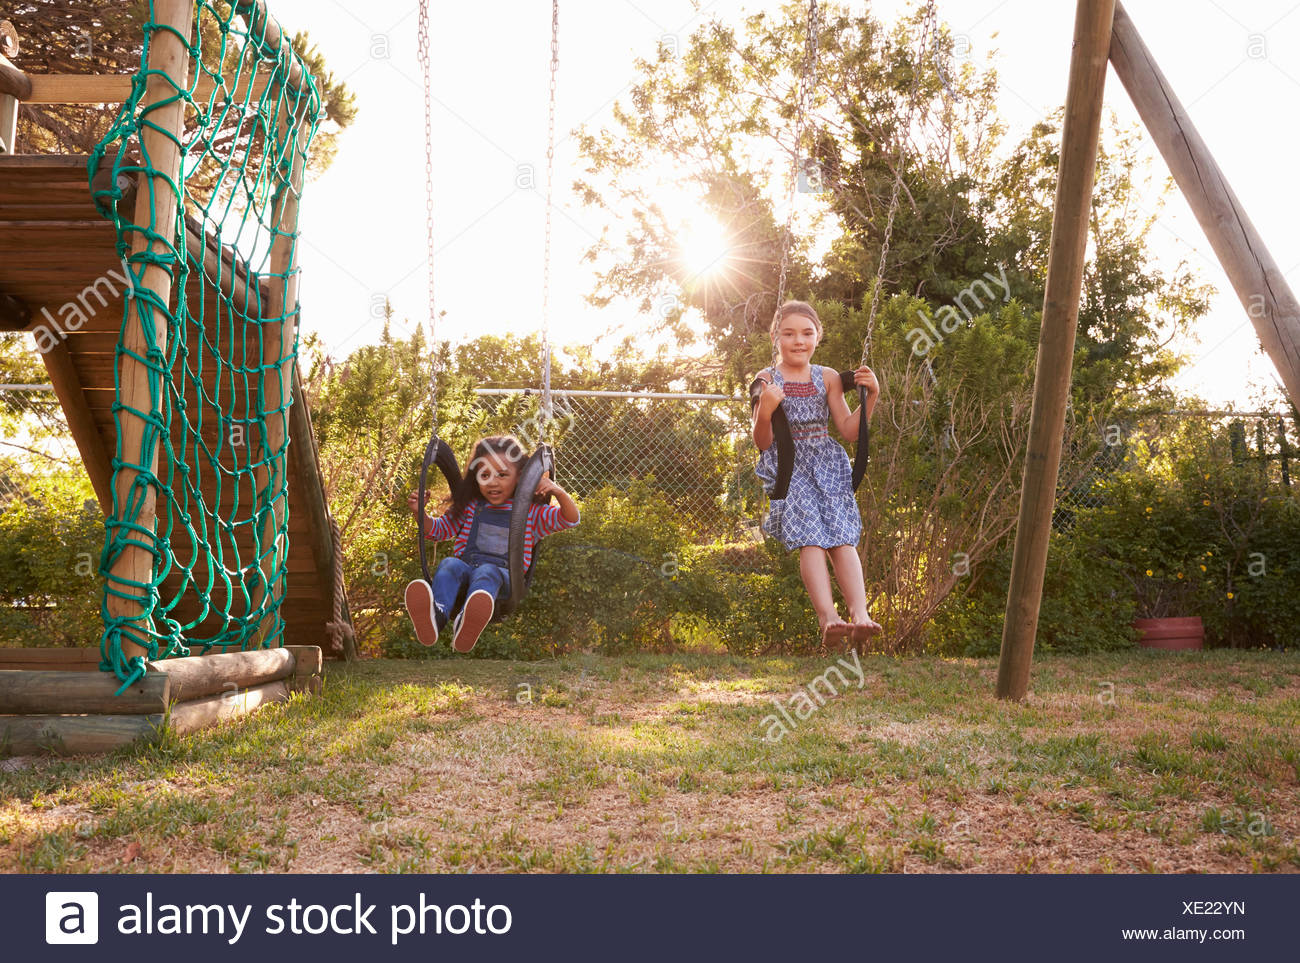 Two Girls Playing Outdoors At Home On Garden Swings Stock Photo ...